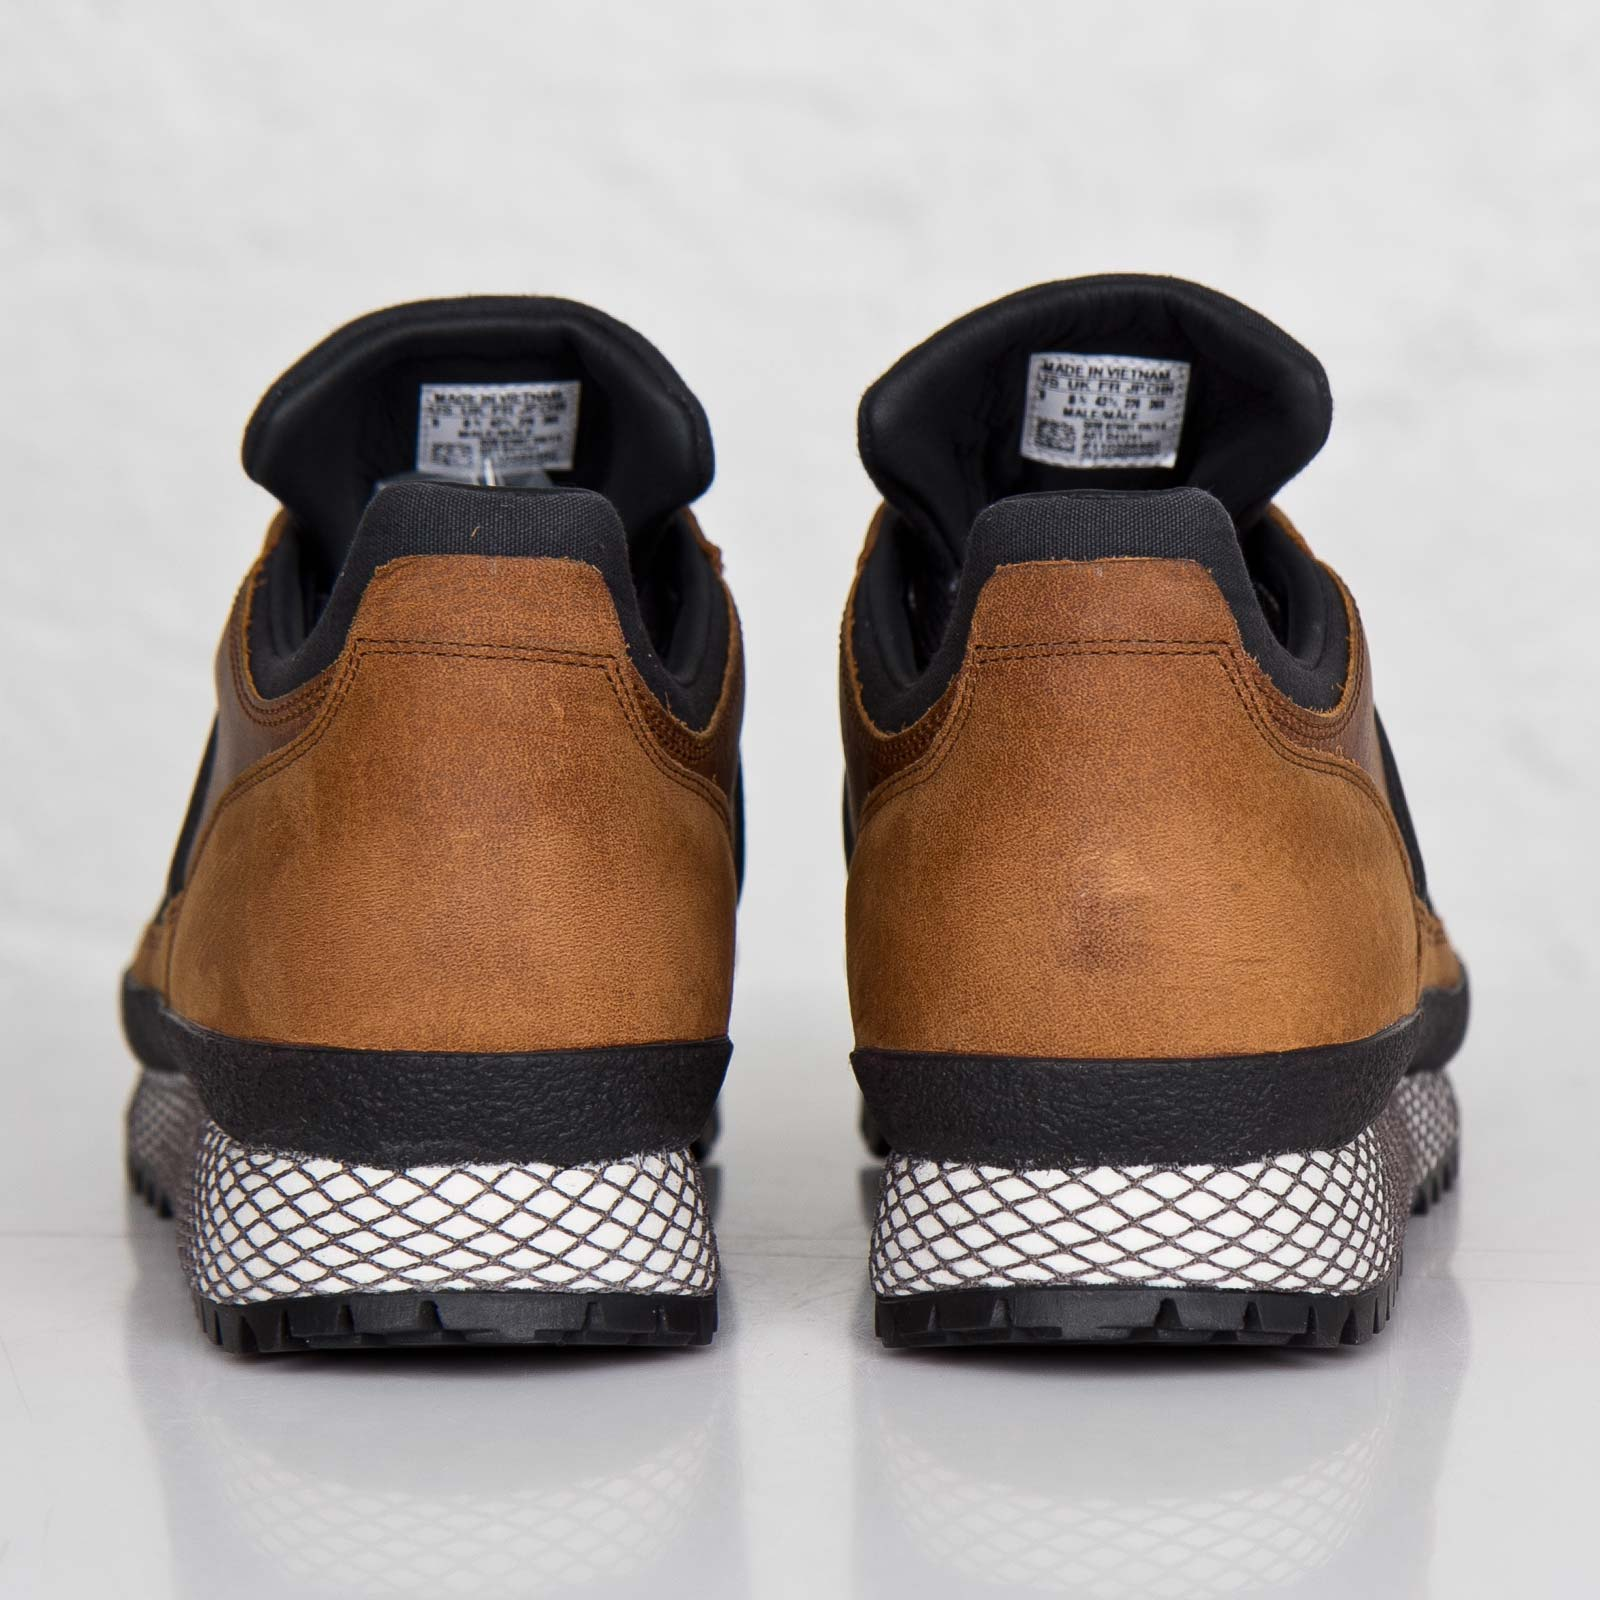 new products 8ac68 56b44 adidas TS Runner - Barbour - B41241 - Sneakersnstuff ...